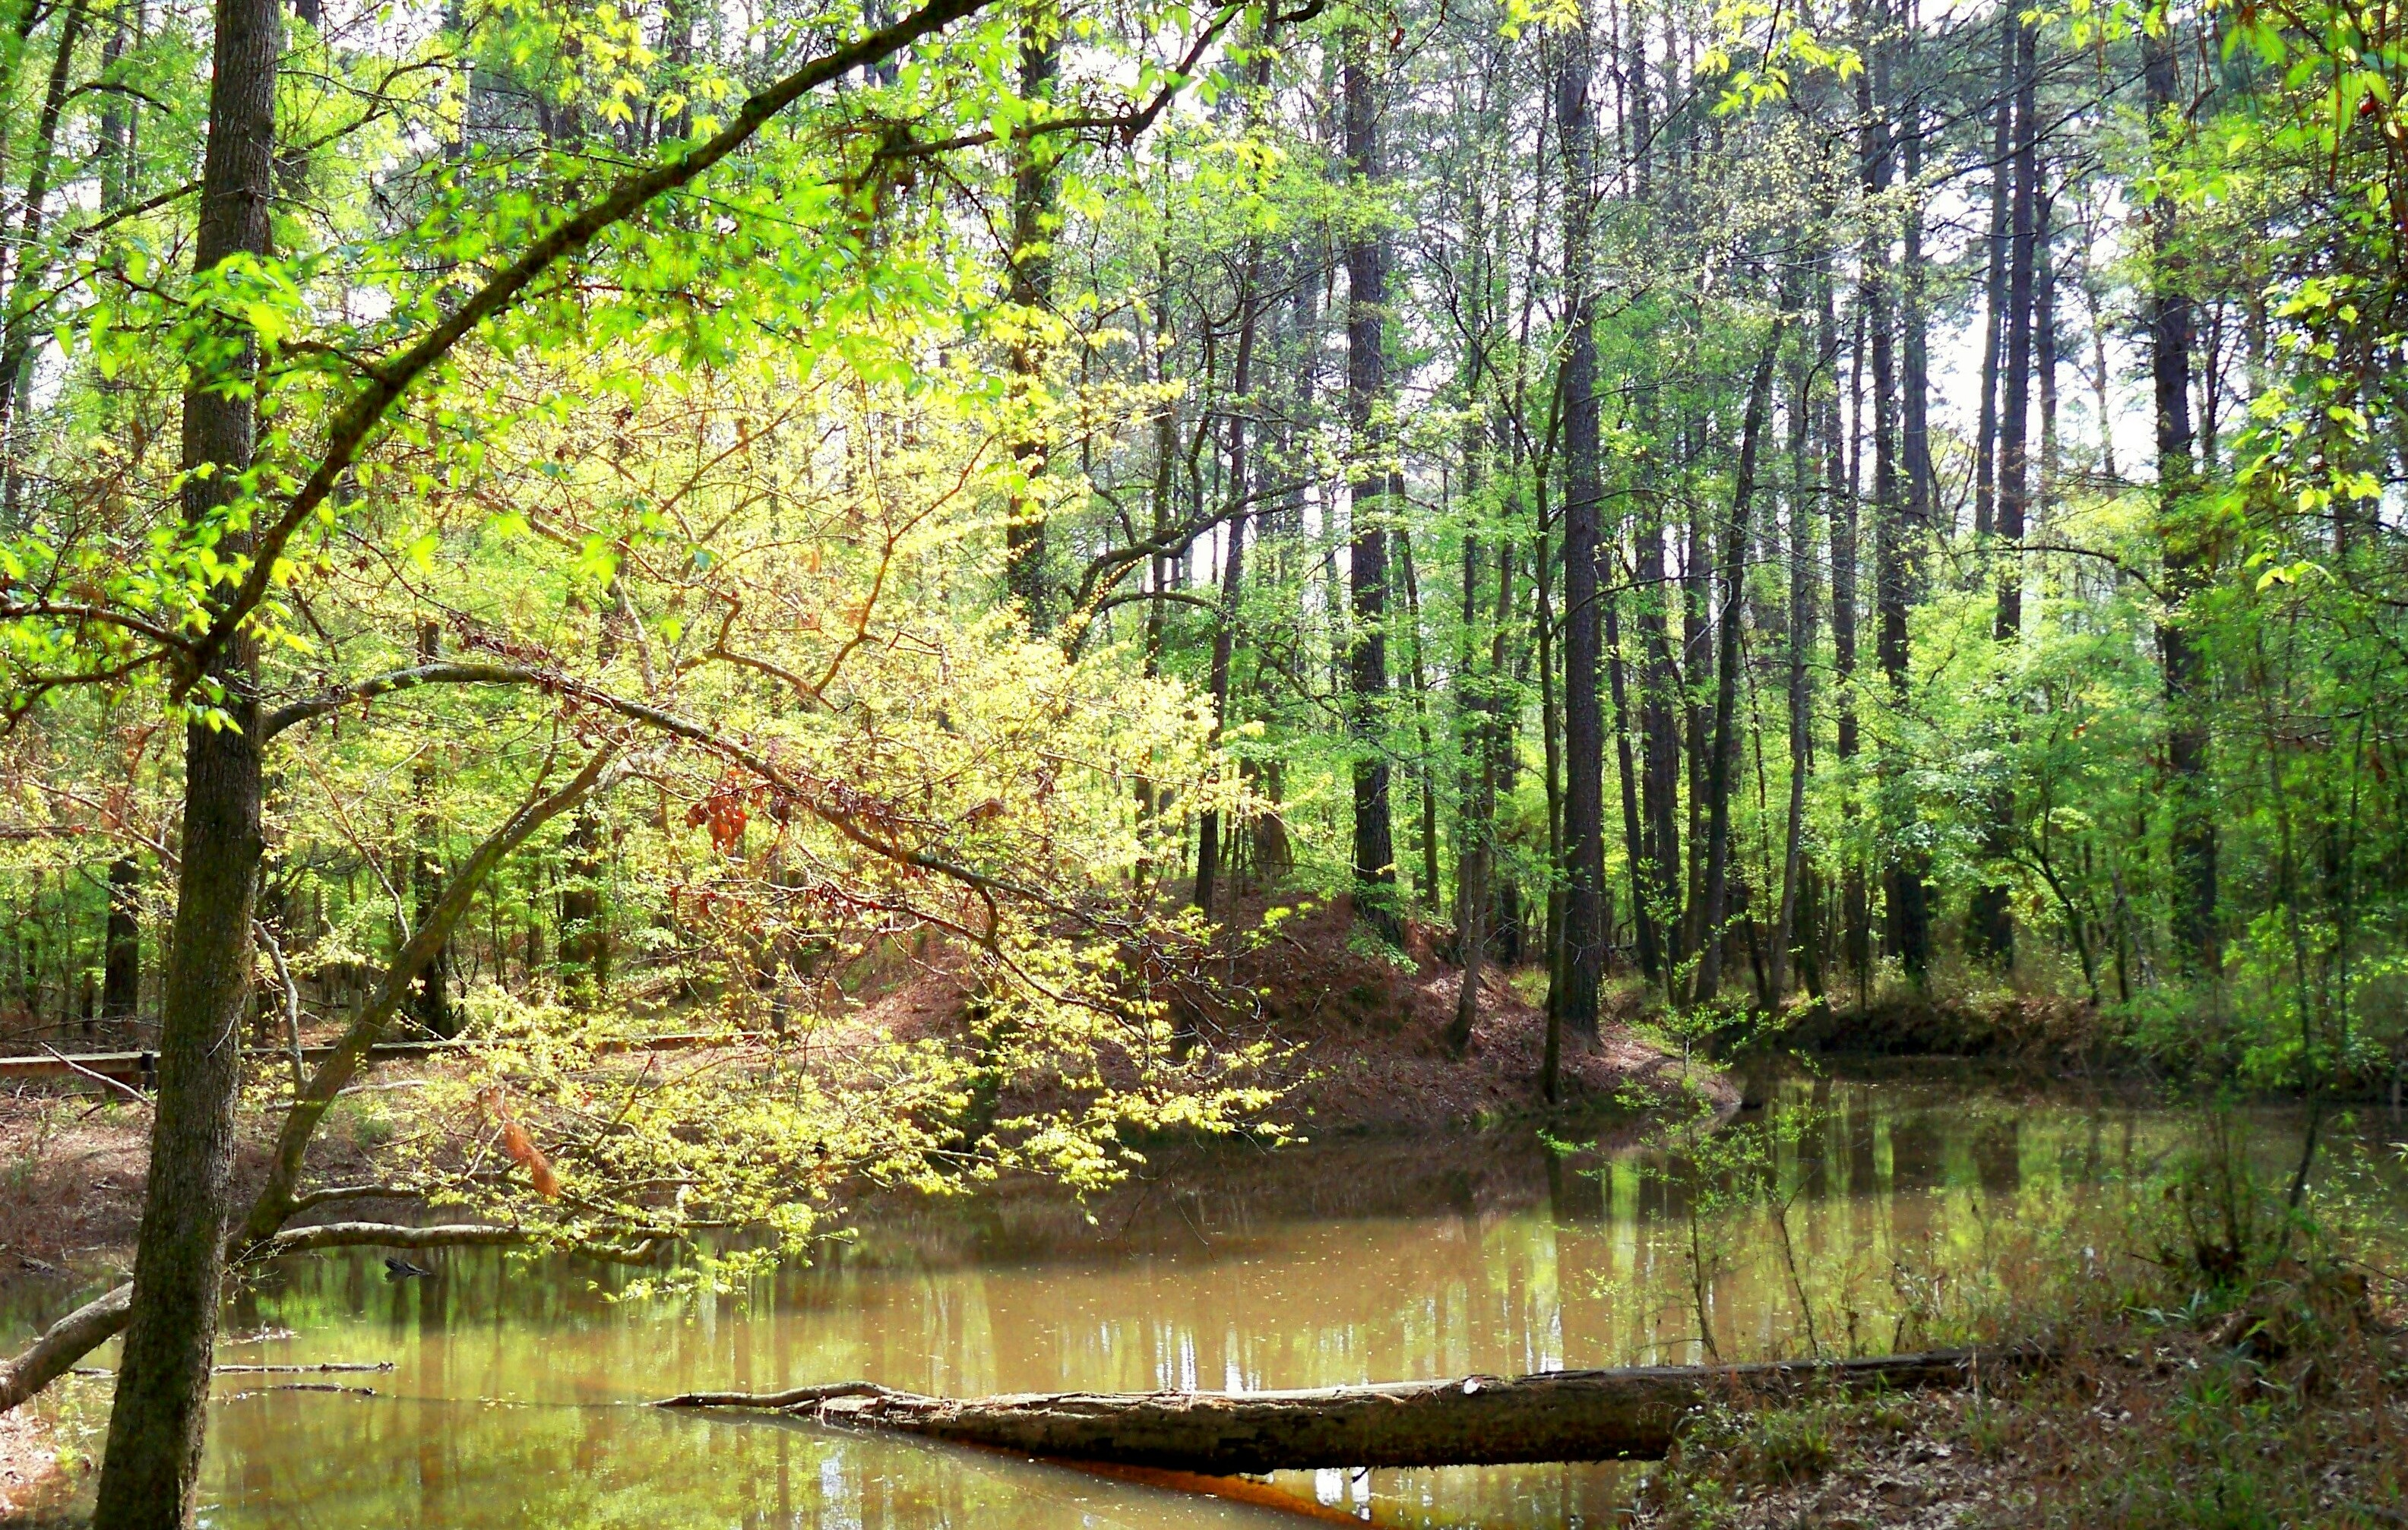 envioronmental and ecological conservation efforts wetland